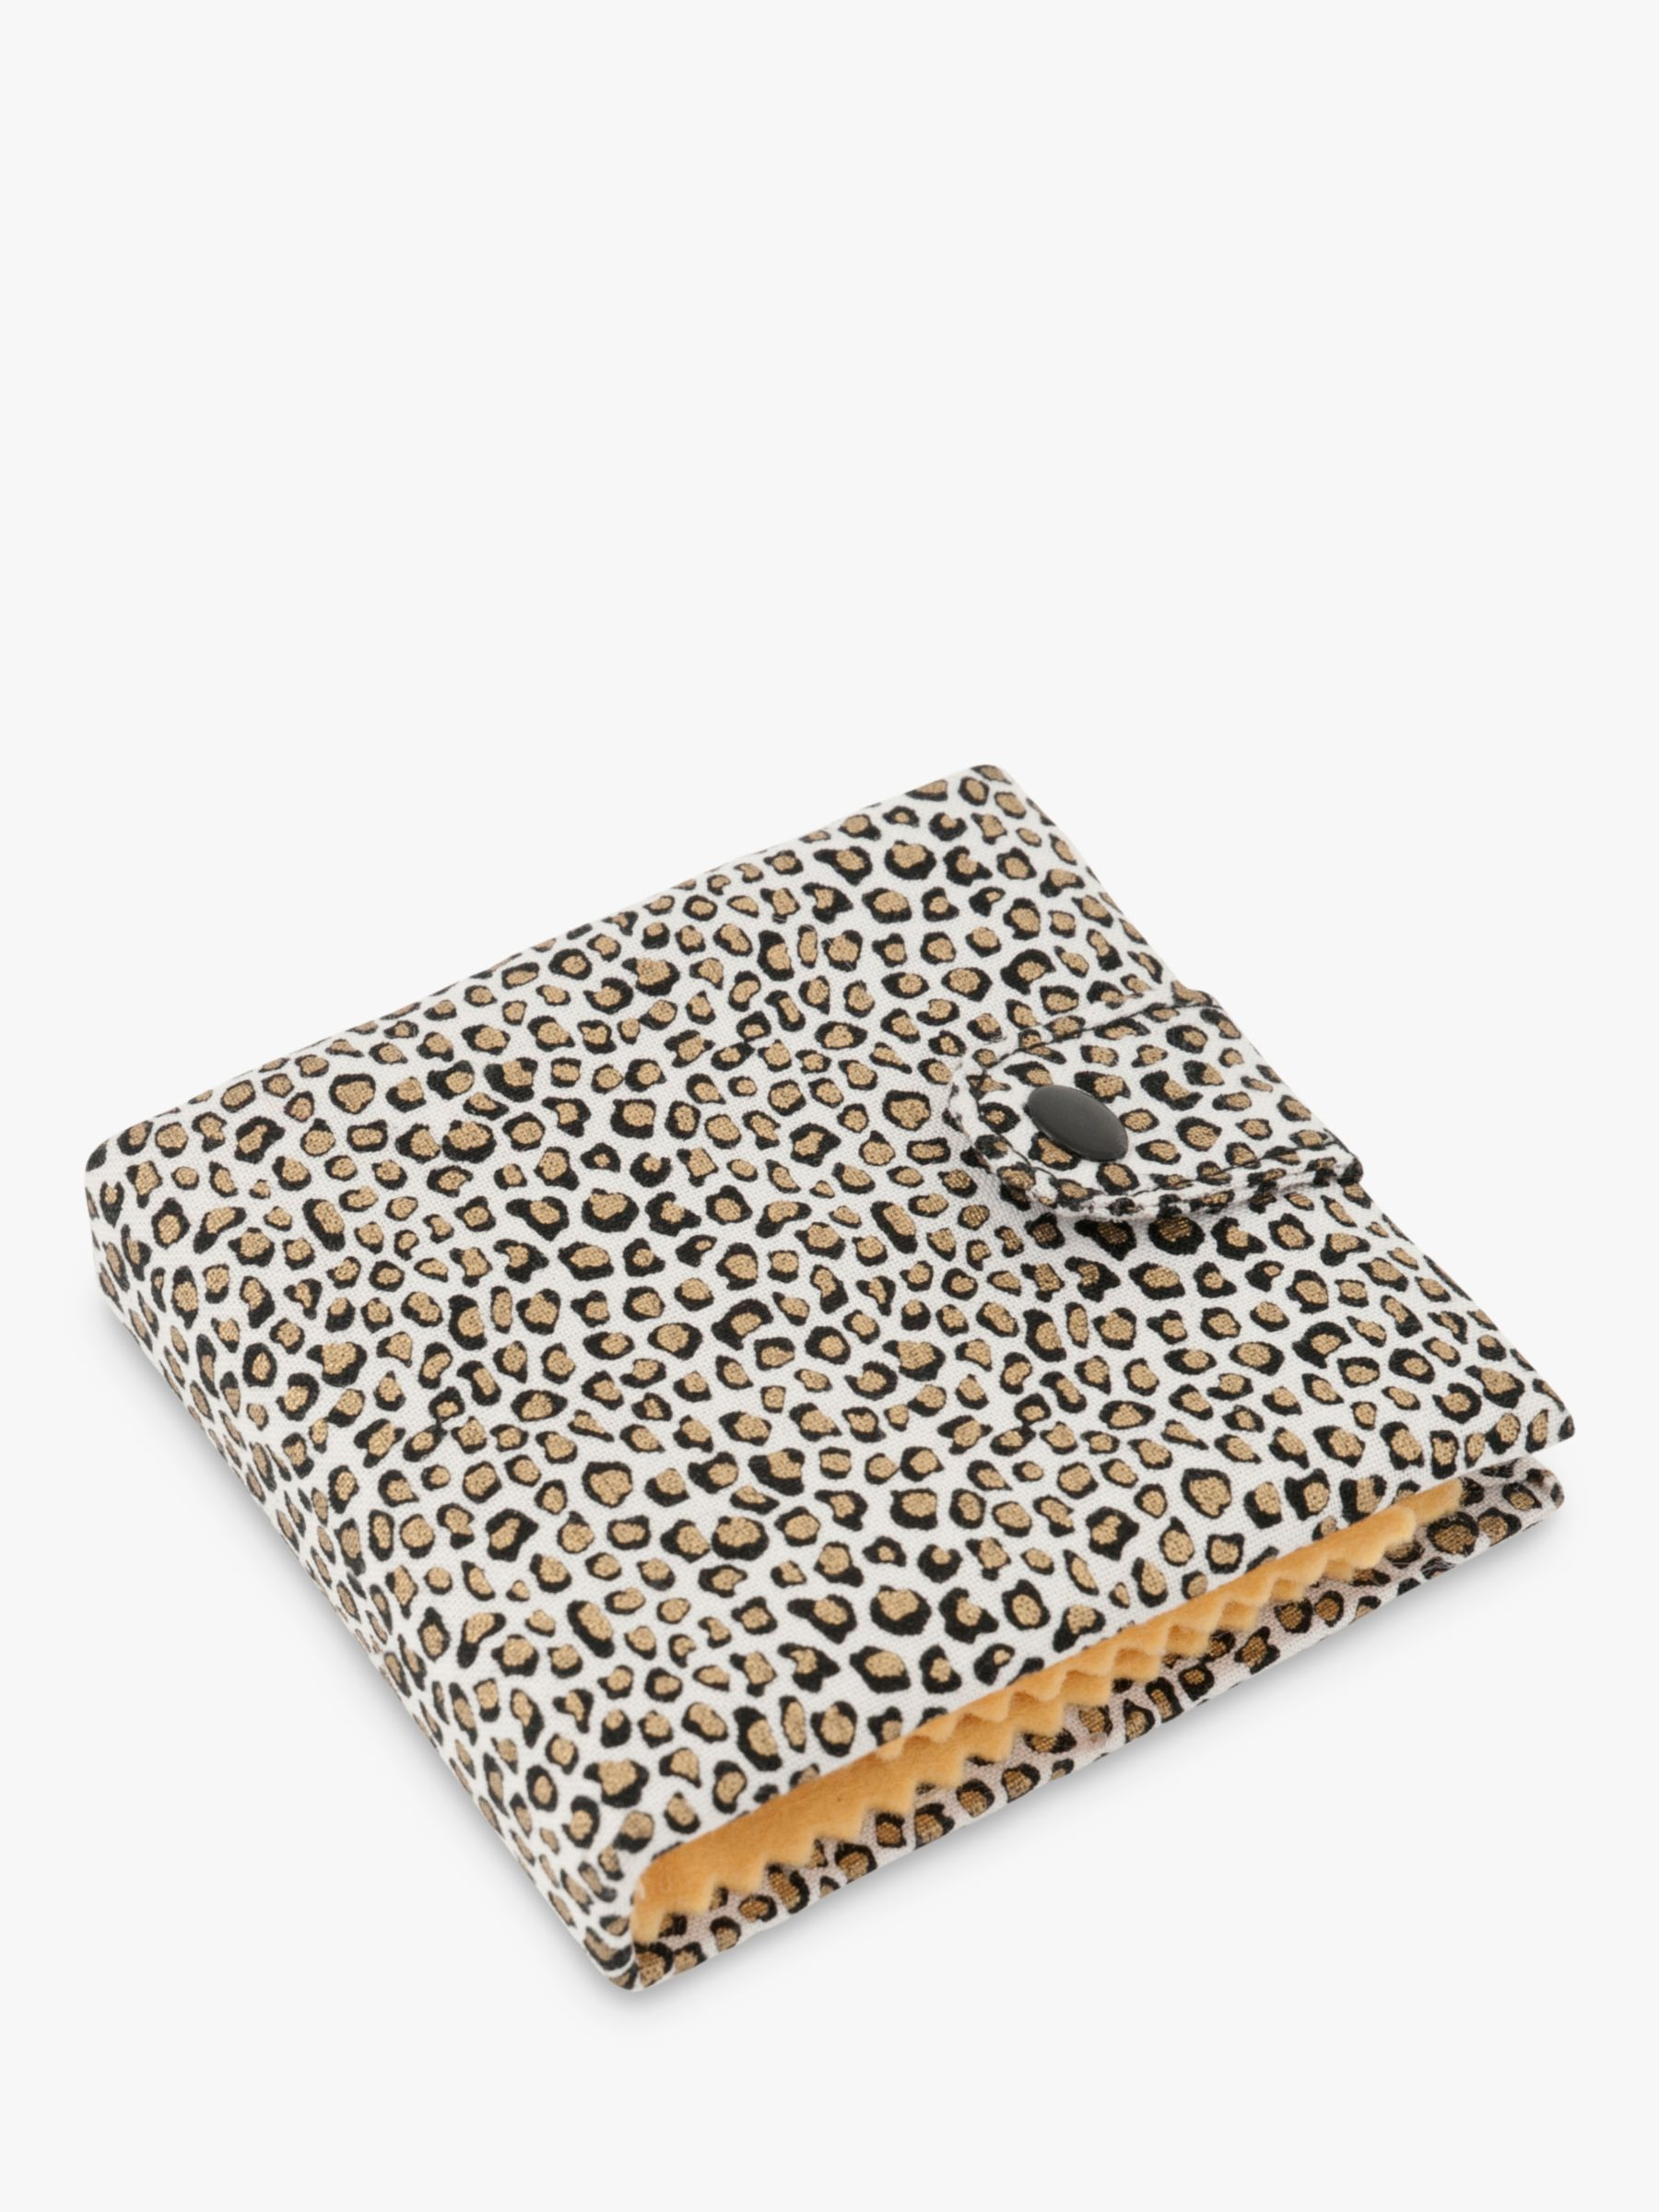 Groves Groves Animal Print Needle Case